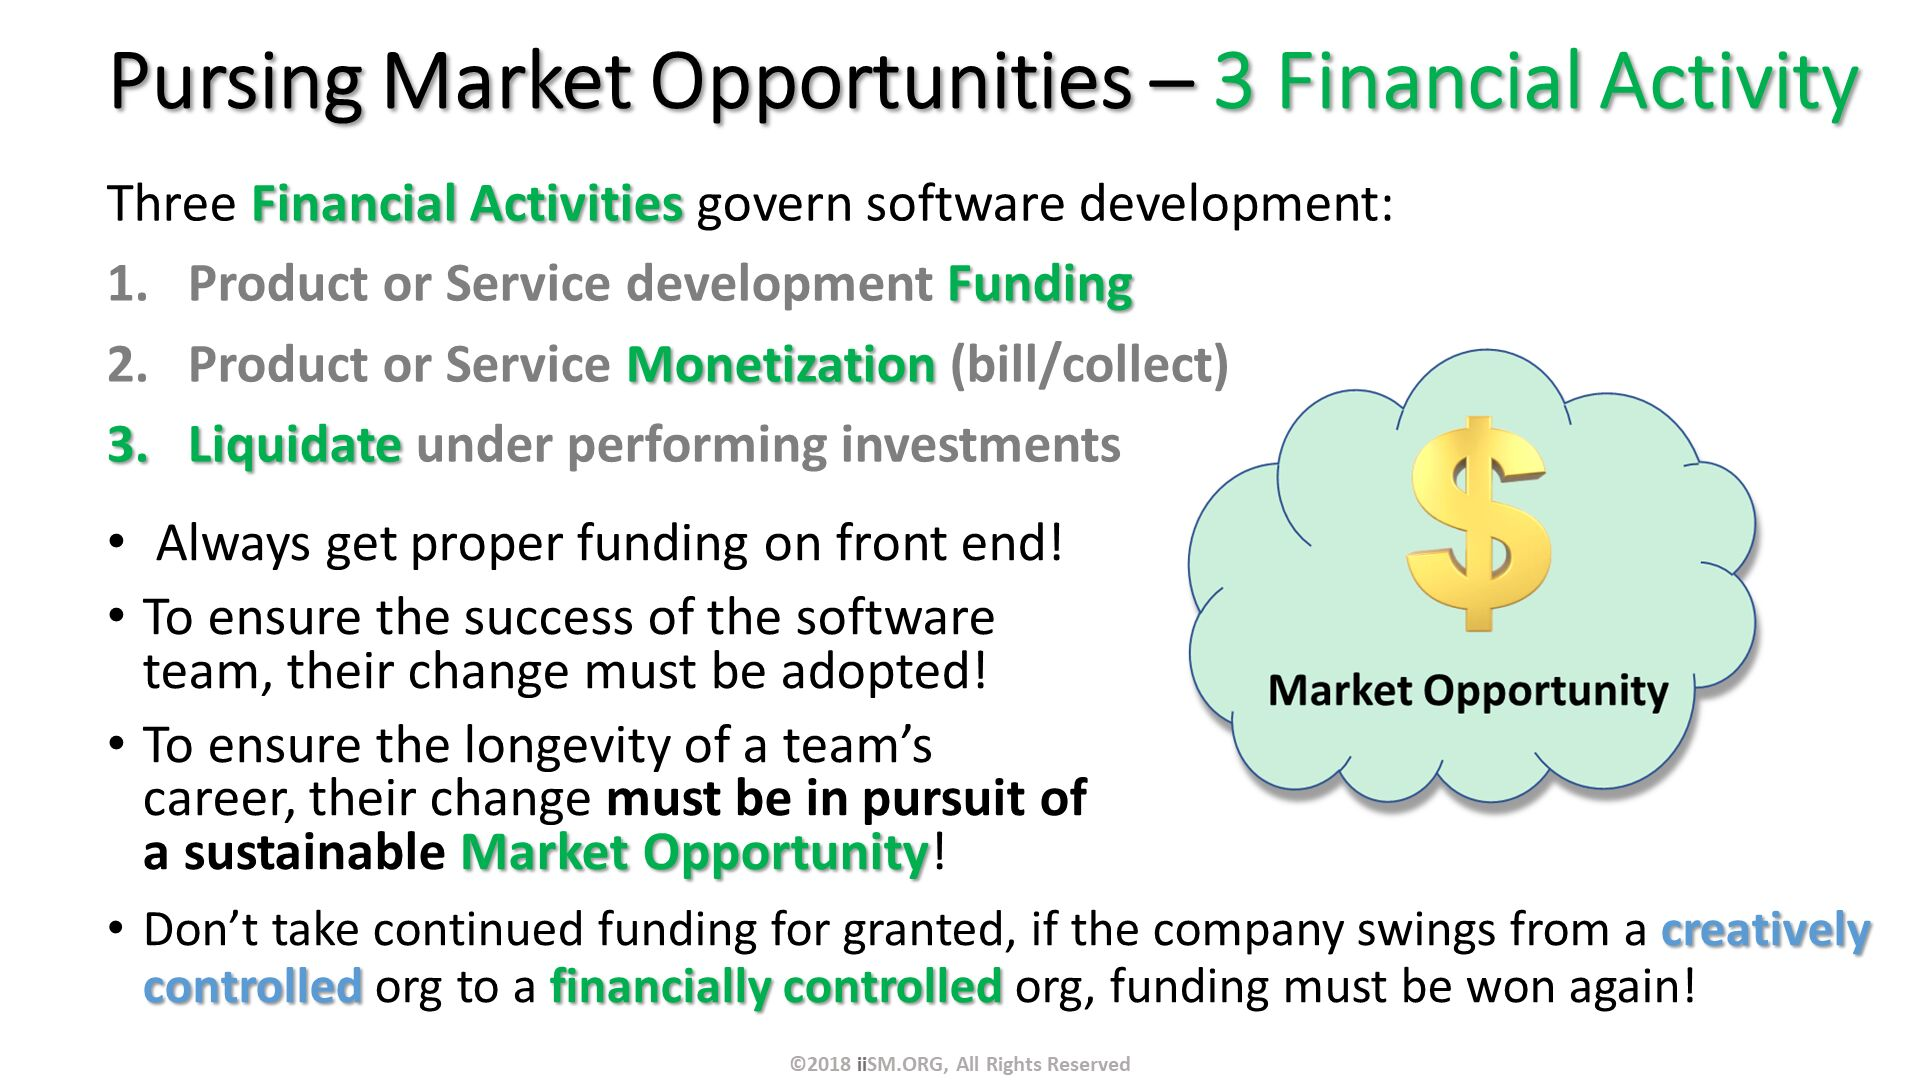 Pursing Market Opportunities – 3 Financial Activity. Three Financial Activities govern software development: Product or Service development Funding Product or Service Monetization (bill/collect) Liquidate under performing investments.  Always get proper funding on front end! To ensure the success of the software team, their change must be adopted!  To ensure the longevity of a team's career, their change must be in pursuit of a sustainable Market Opportunity!  . Don't take continued funding for granted, if the company swings from a creatively controlled org to a financially controlled org, funding must be won again! . ©2018 iiSM.ORG, All Rights Reserved.